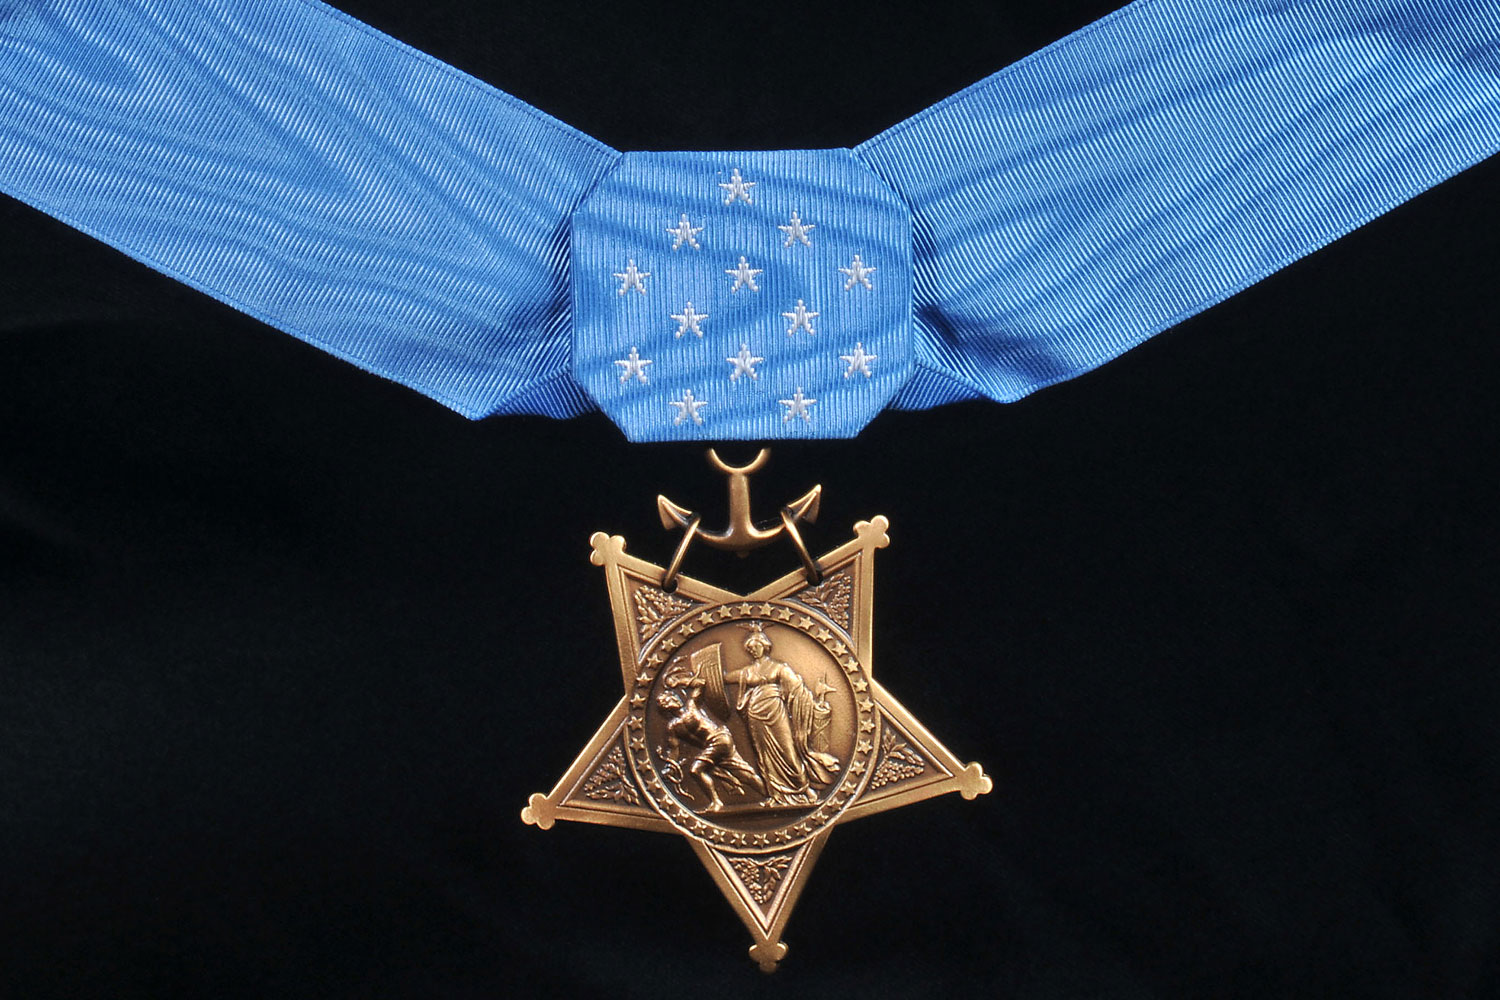 https://www.military.com/militaryadvantage/2014/04/what-do-medal-of-honor-awardees-get